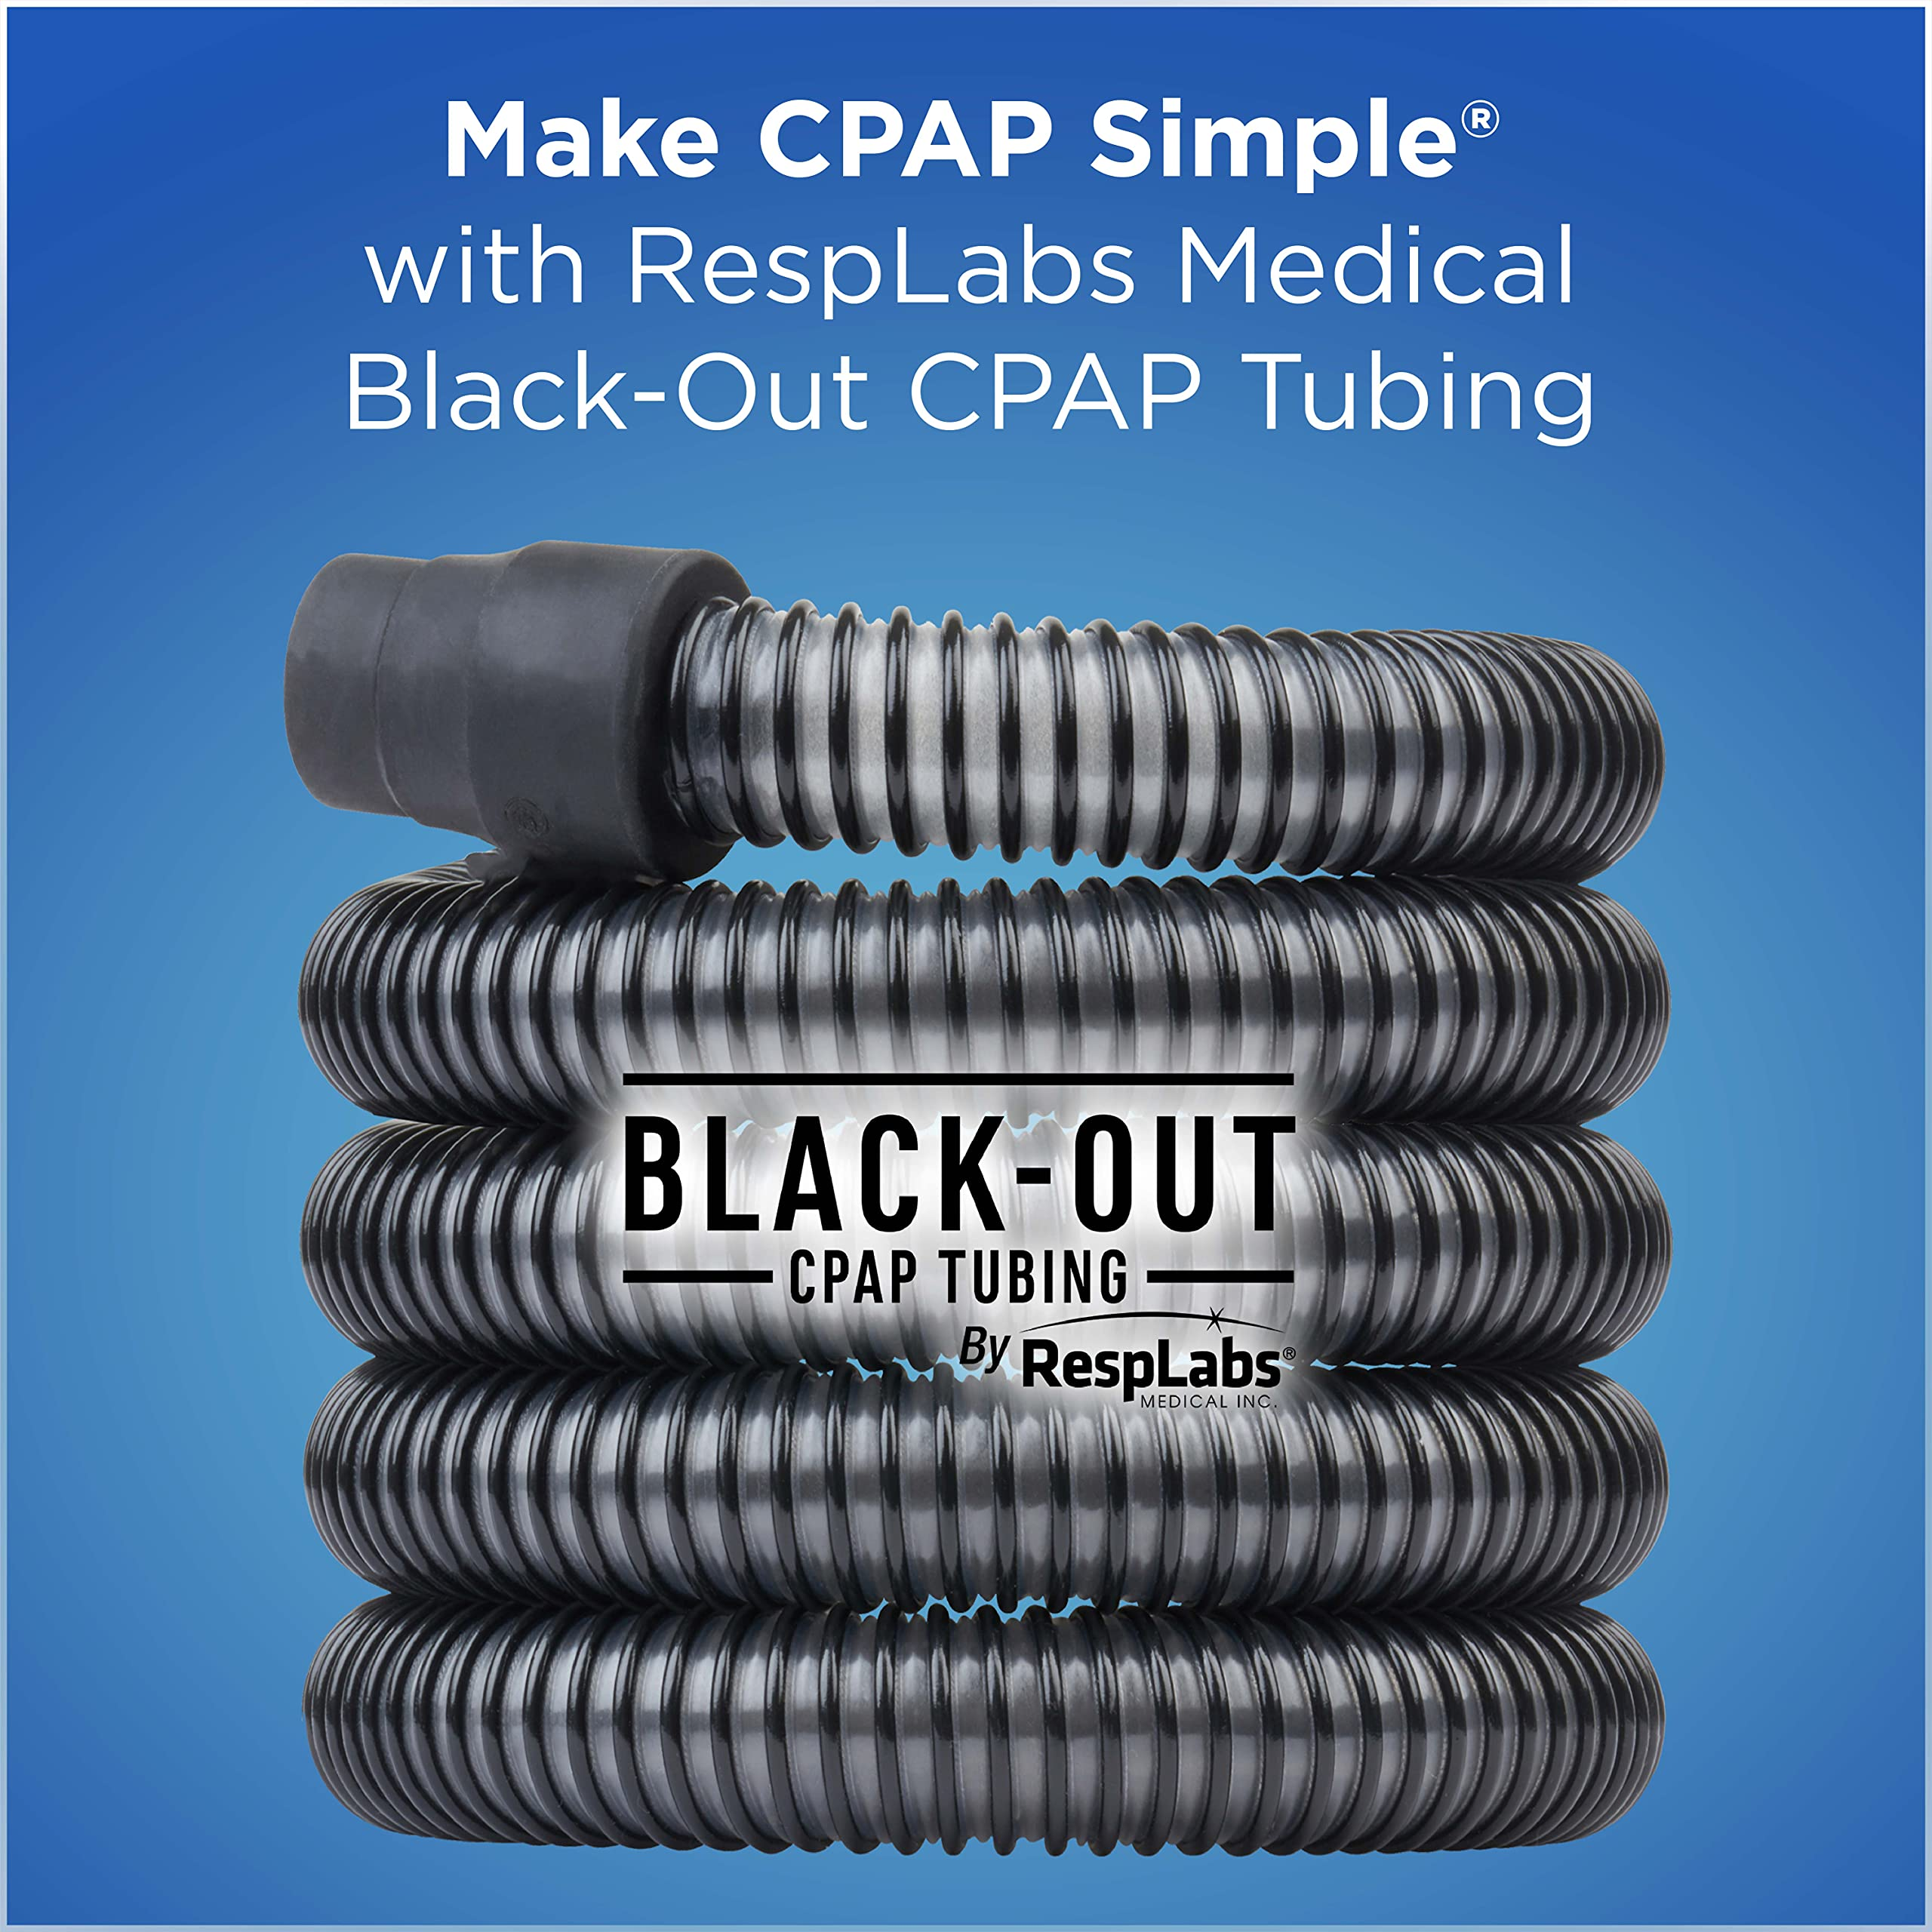 RespLabs Medical CPAP Hose, 6 Foot Black-Out Tubing - Durable, Universal Tube Replacement fits Most Machines.